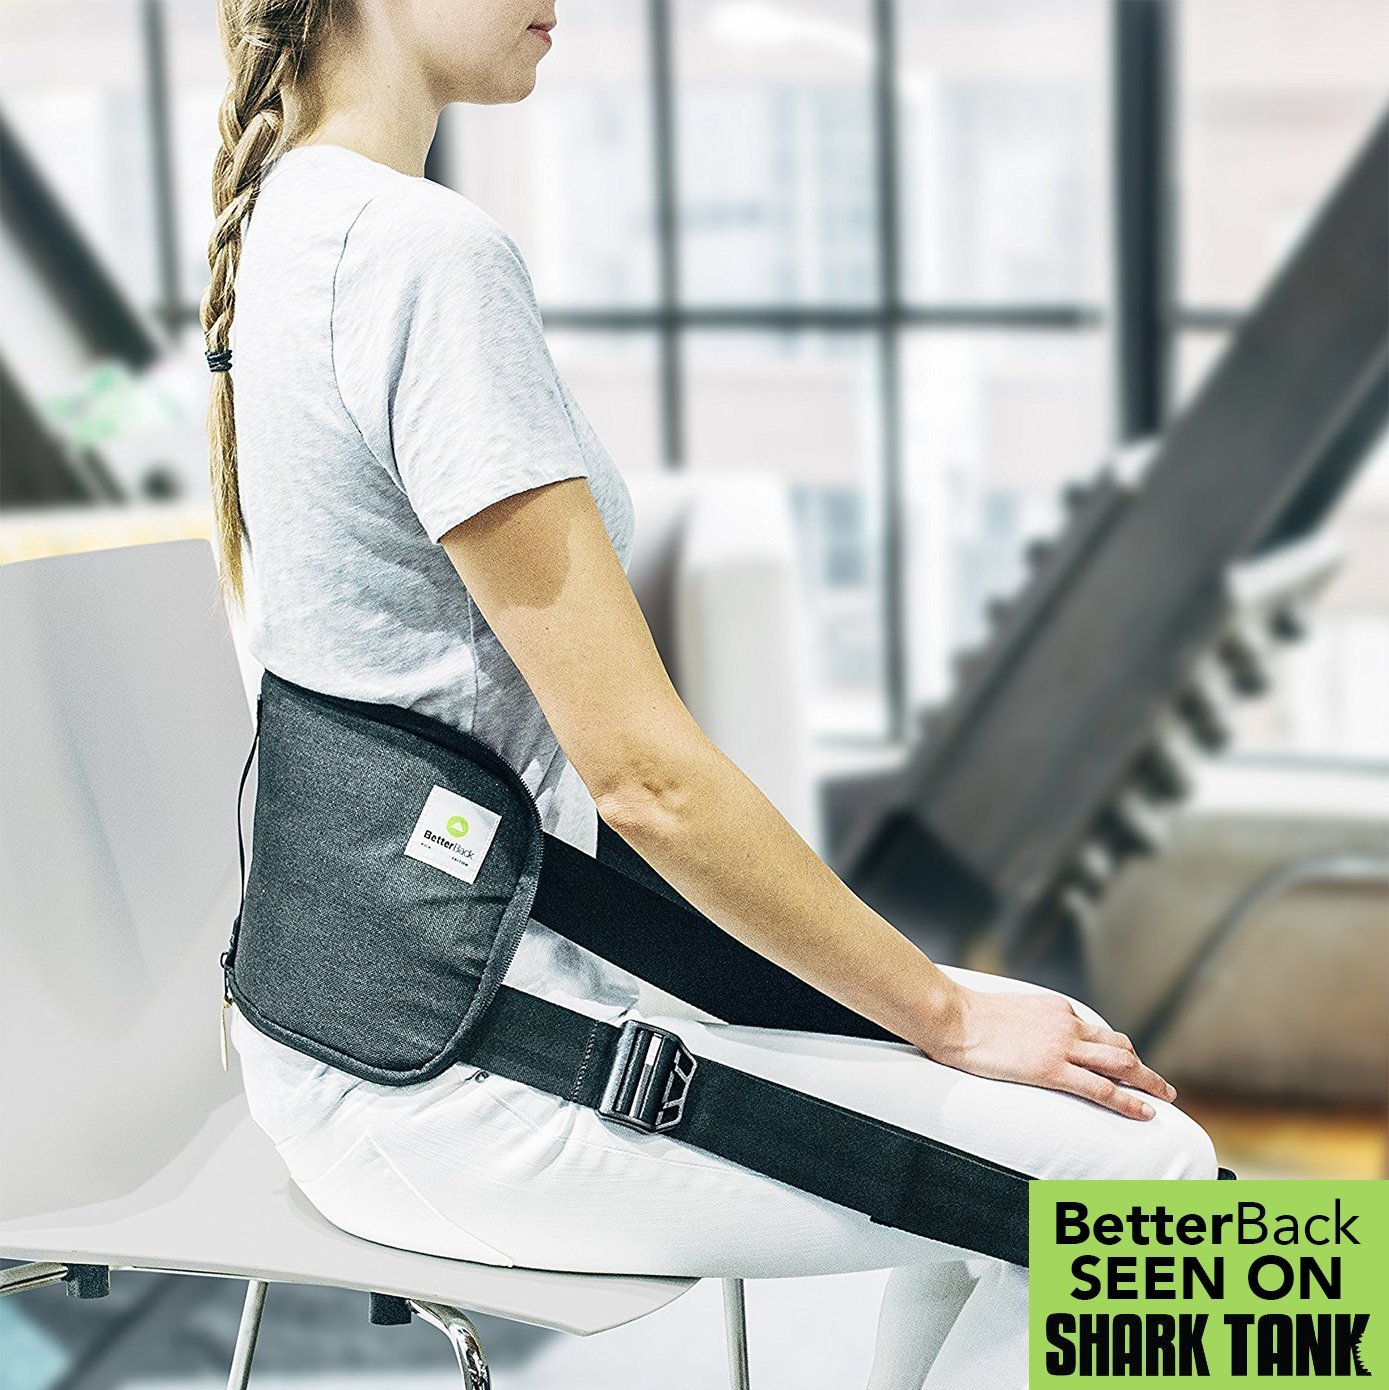 BetterBack - #1 Lower Back Support Posture Belt | As Seen On Shark Tank USA | Improves Posture & Eases Lower Back Pain While You Sit (Use For Just 15 Mins A Day) |For Men & Women|Doctor Recommended by BetterBack